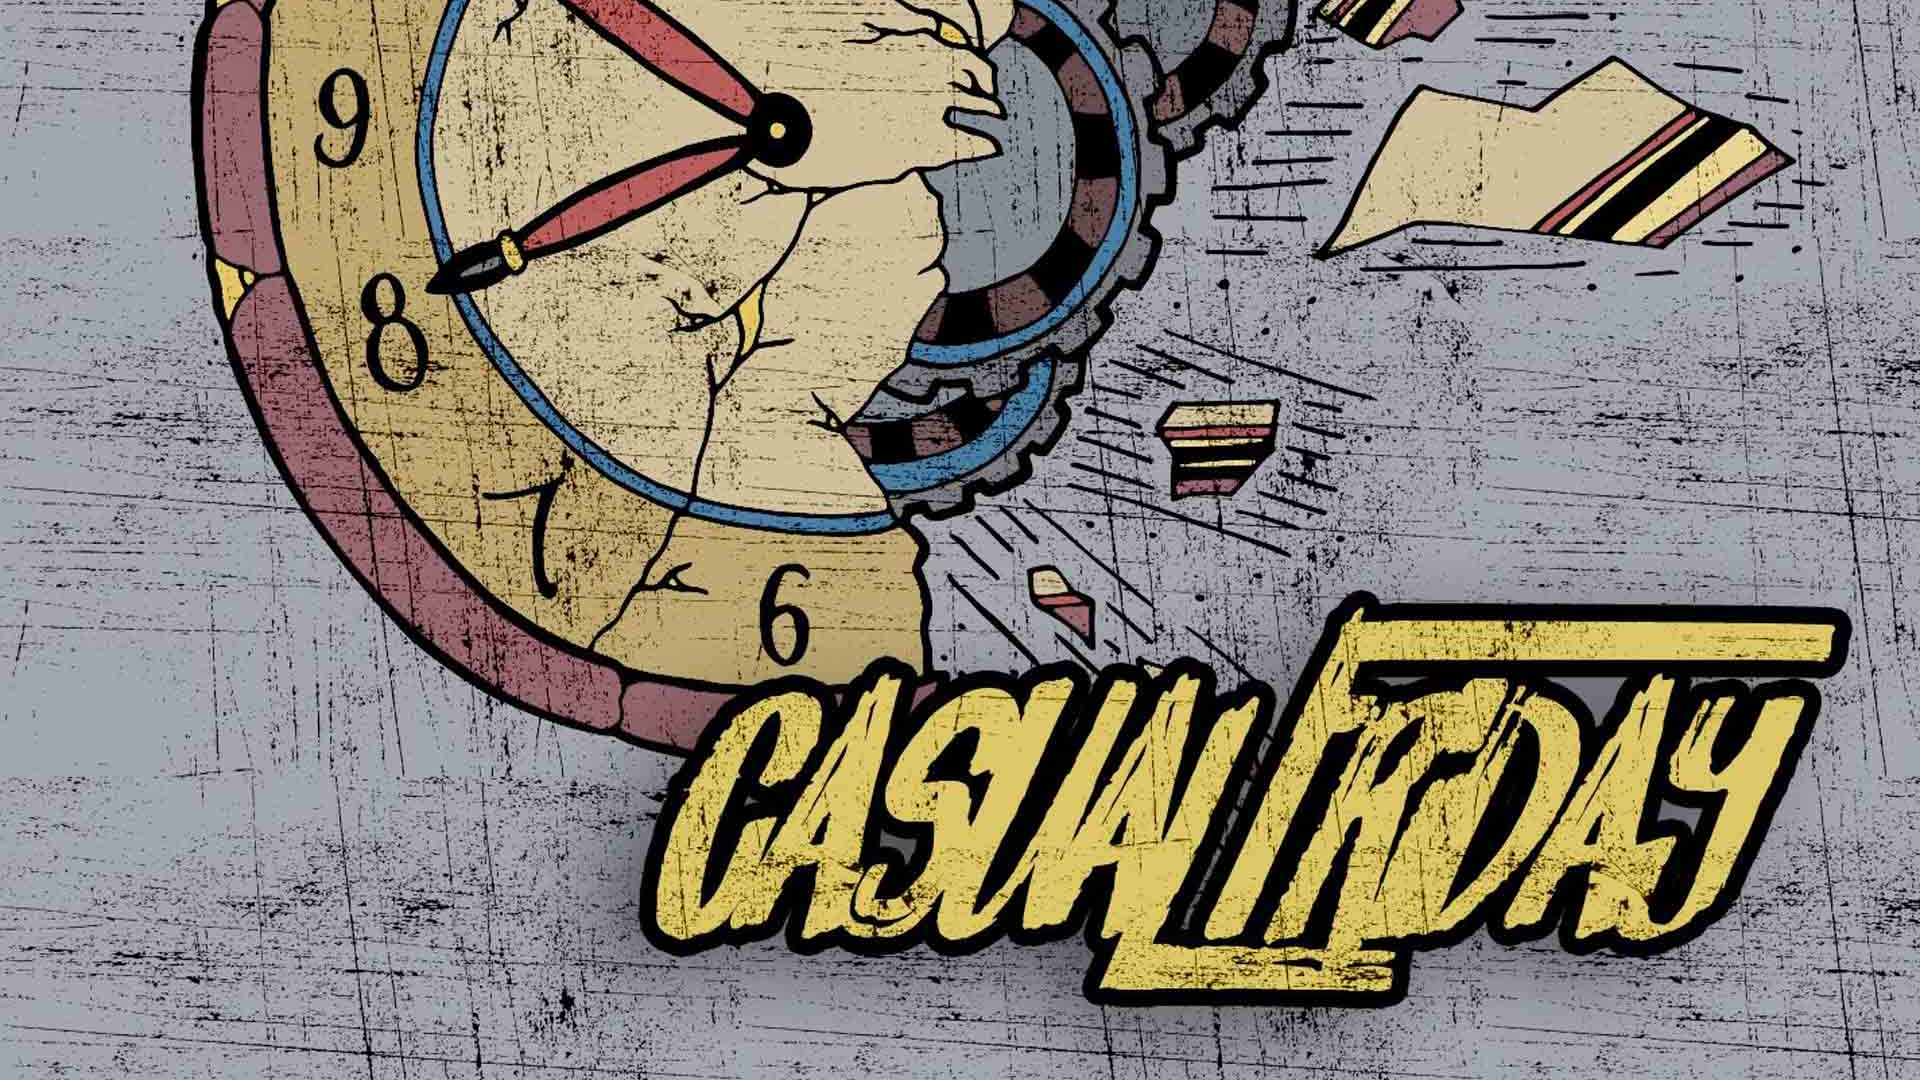 CASUAL FRIDAY - QUARTER LIFE CRISIS (ALBUM REVIEW)   Pop Punk, Punk Rock   Northern NJ   Posted March 20, 2018